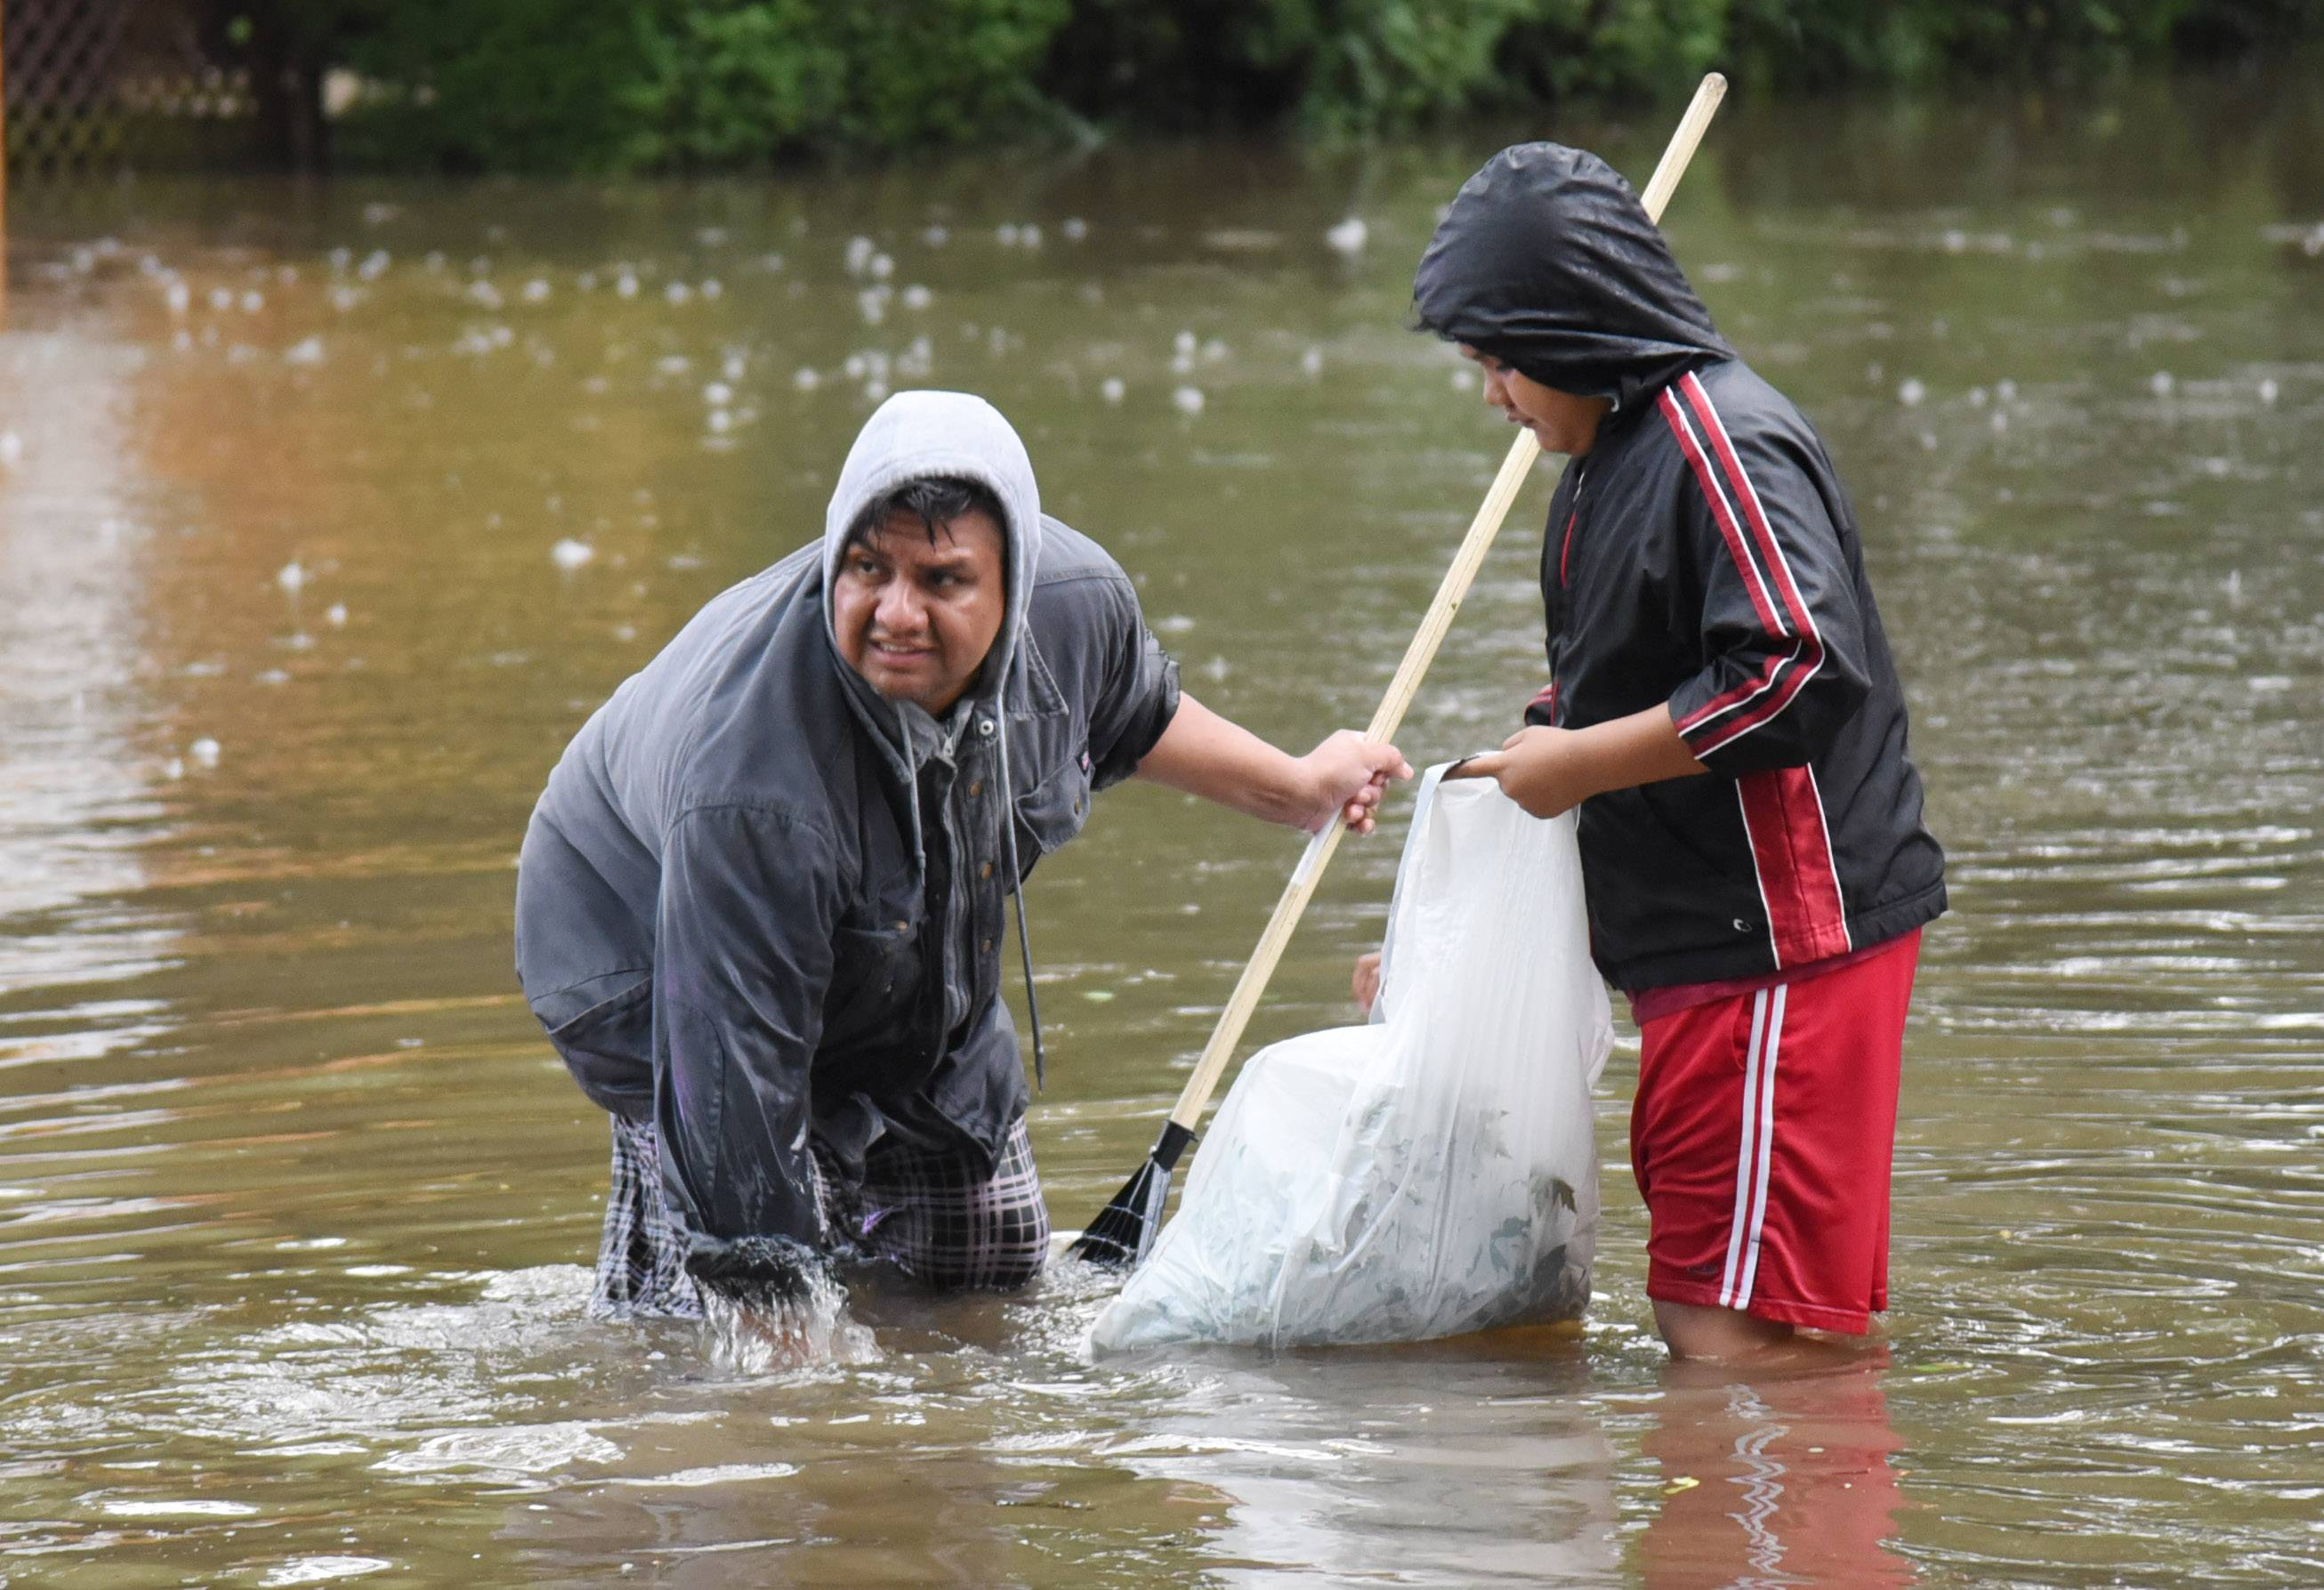 Mundelein likely adding fee, liquor tax to fund flood relief